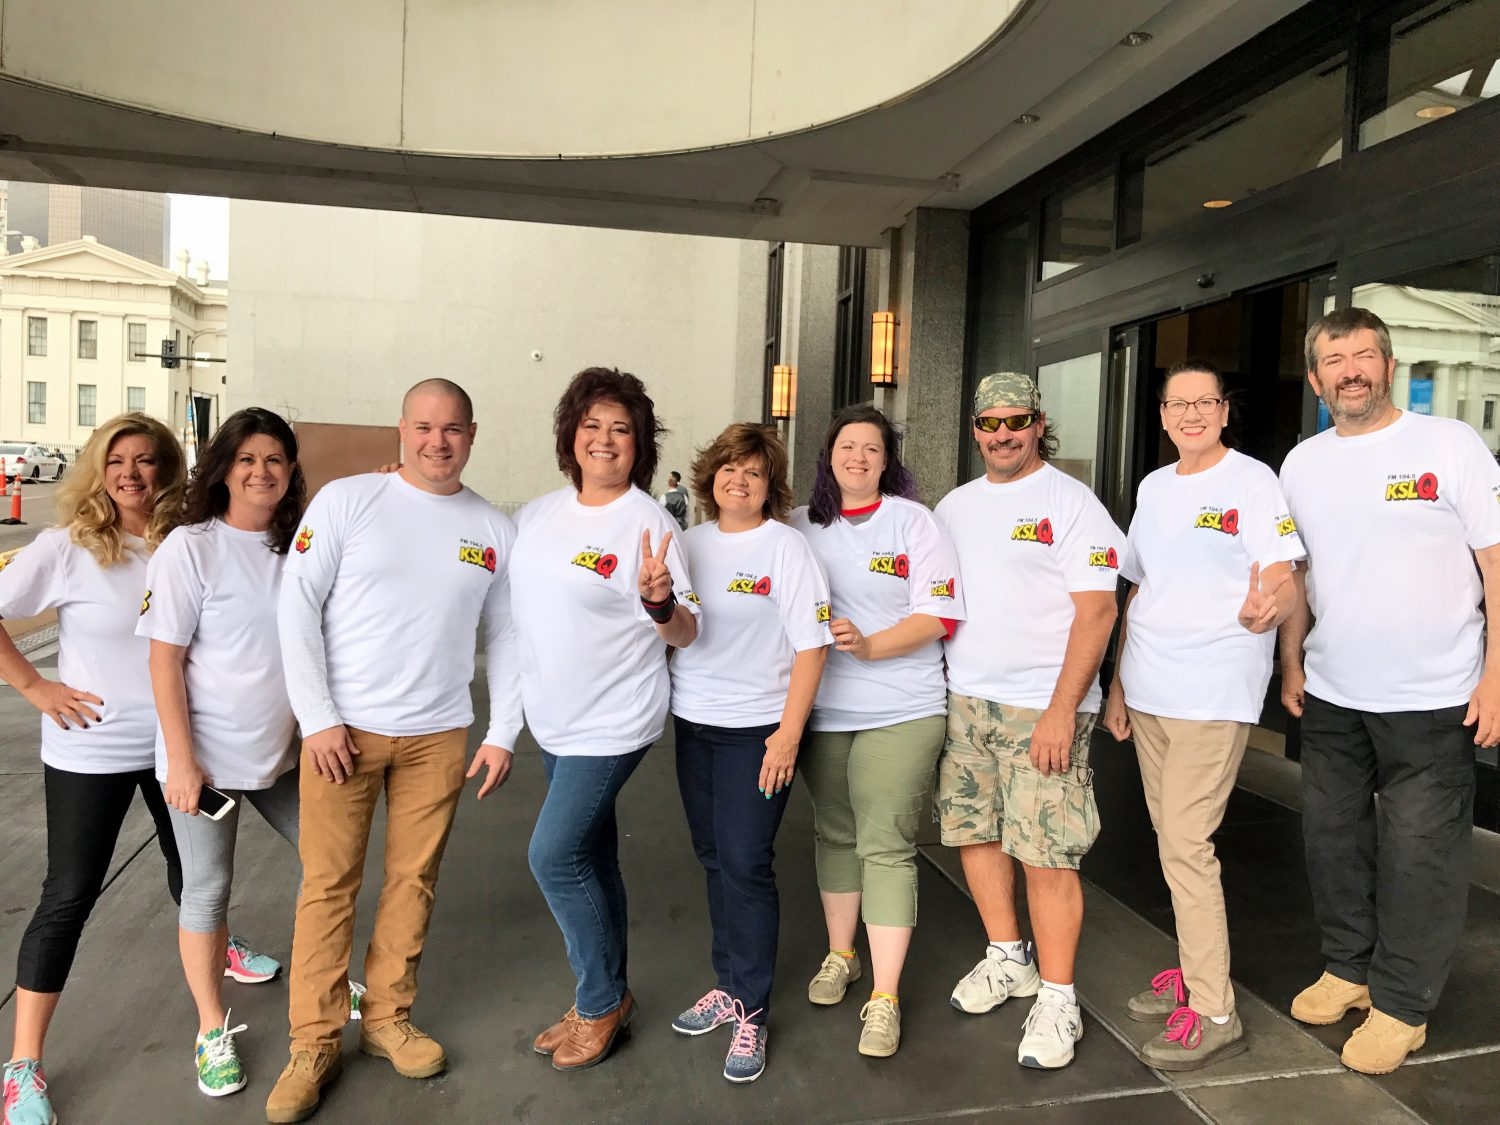 KSLQ Over The Edge Team Raises Most Money for Special Olympics